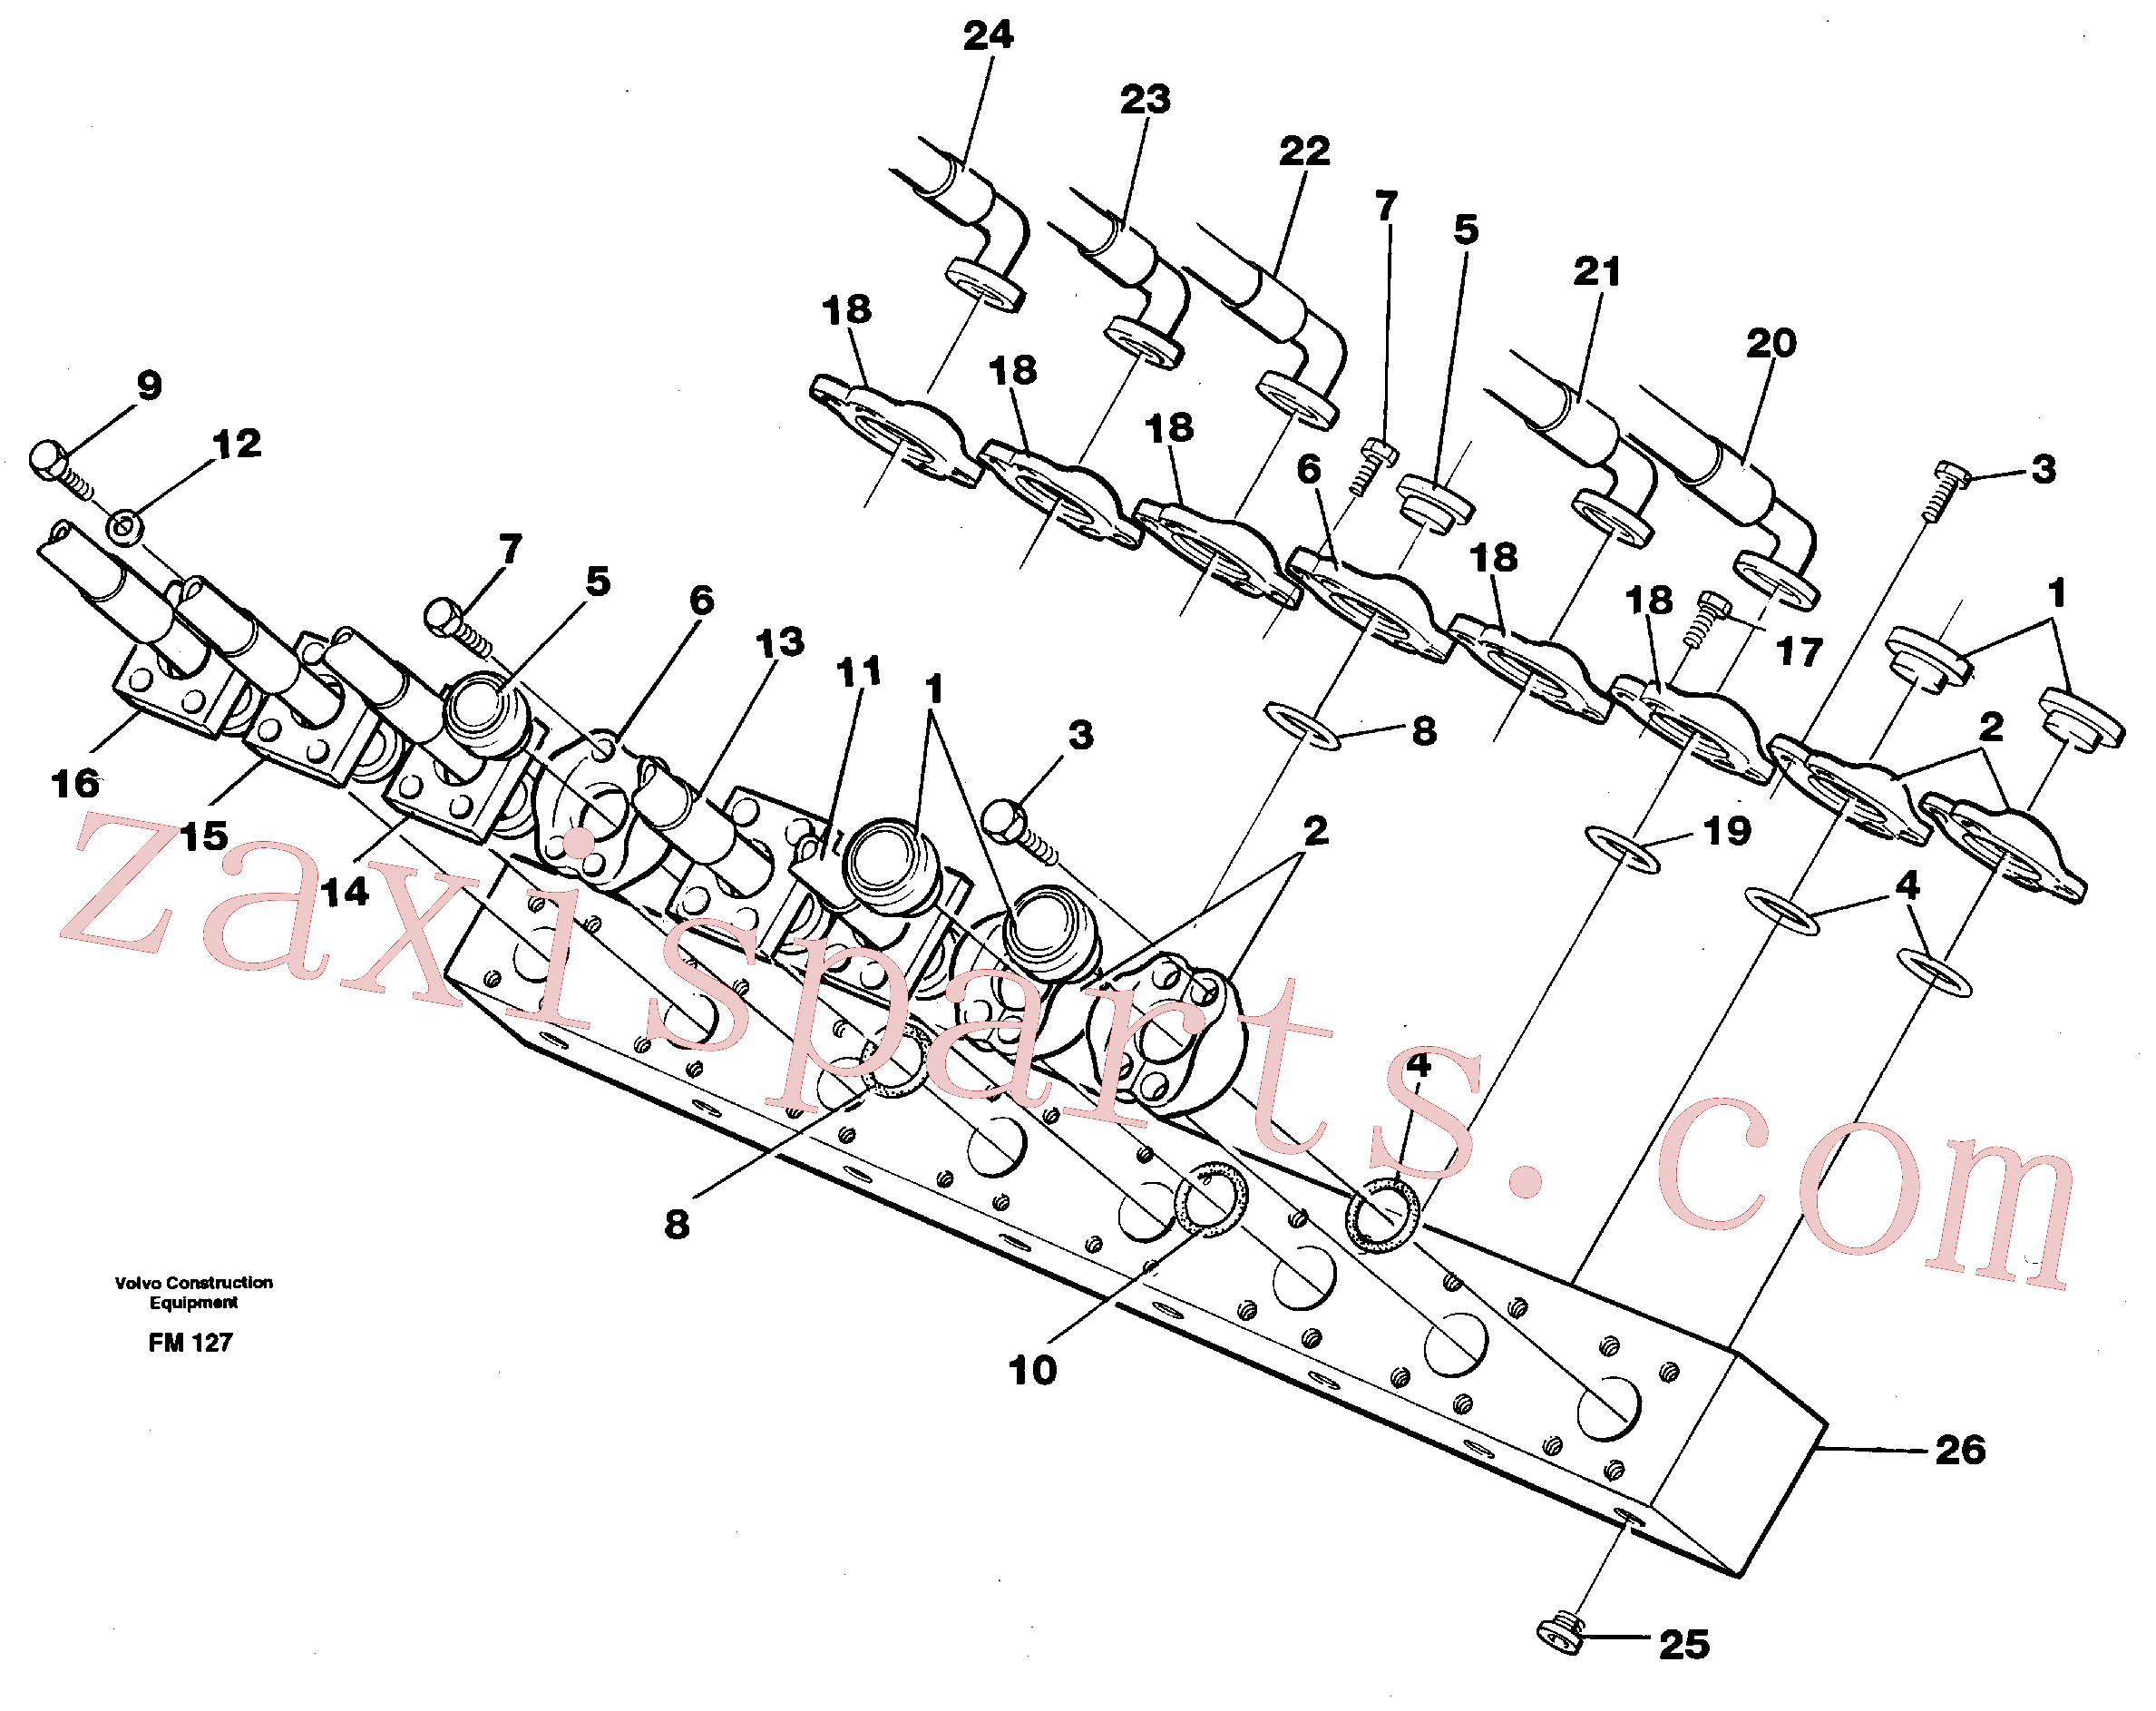 VOE14265516 for Volvo Conneection block with hoses(FM127 assembly)